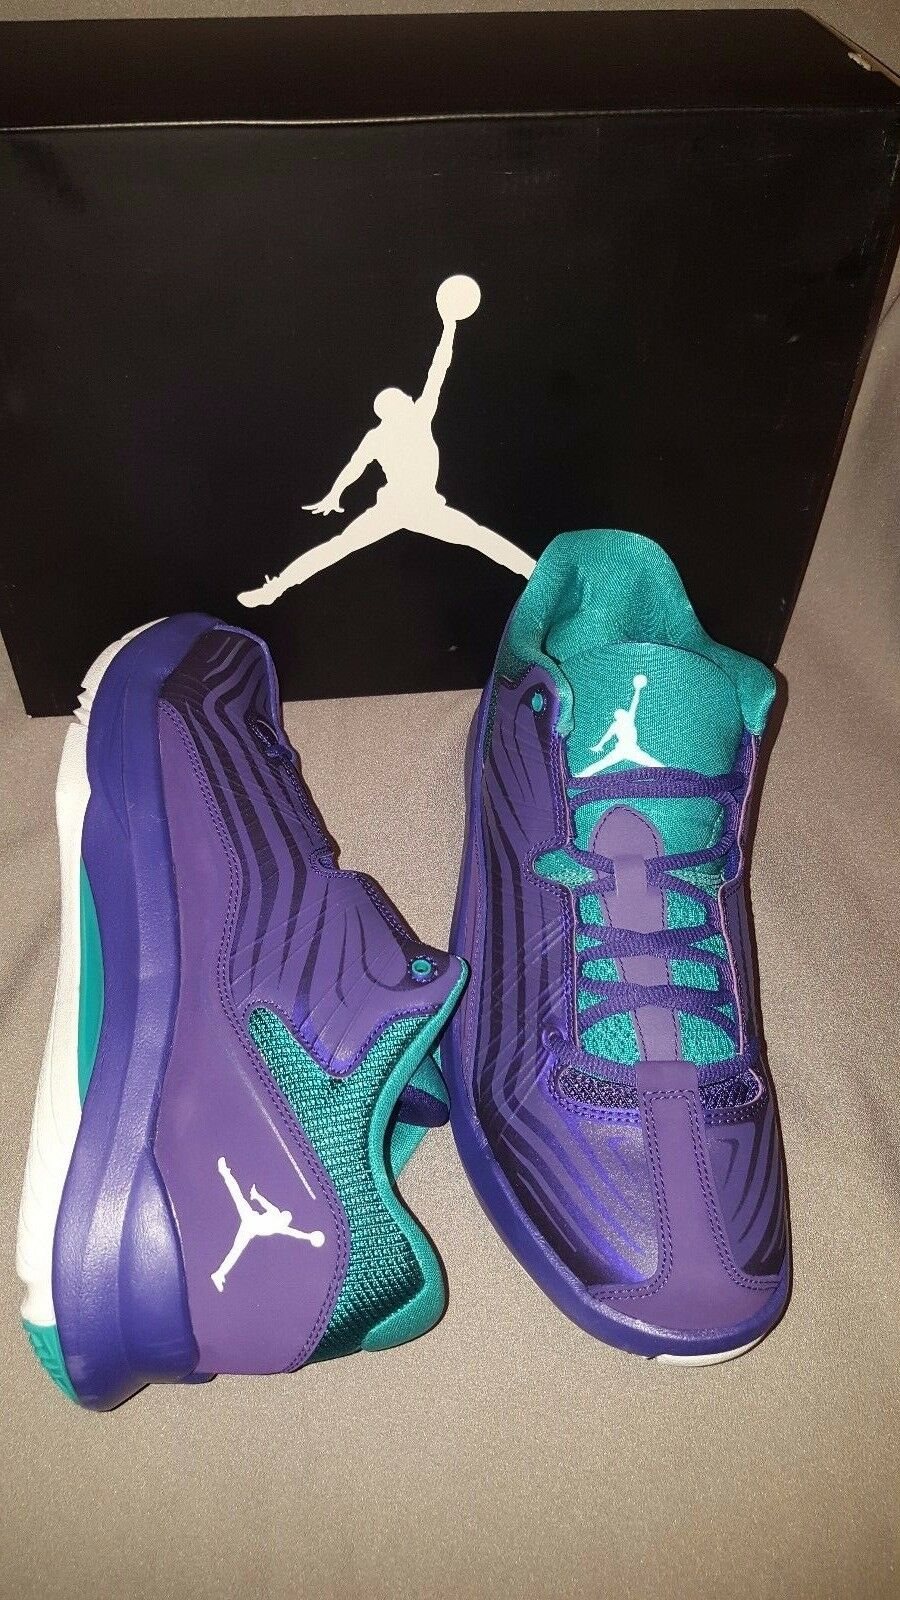 NIKE JORDAN AERO MANIA LOW PURPLE GRAPE 574411 593 MENS SHOES SIZE 9.5 NEW NIB